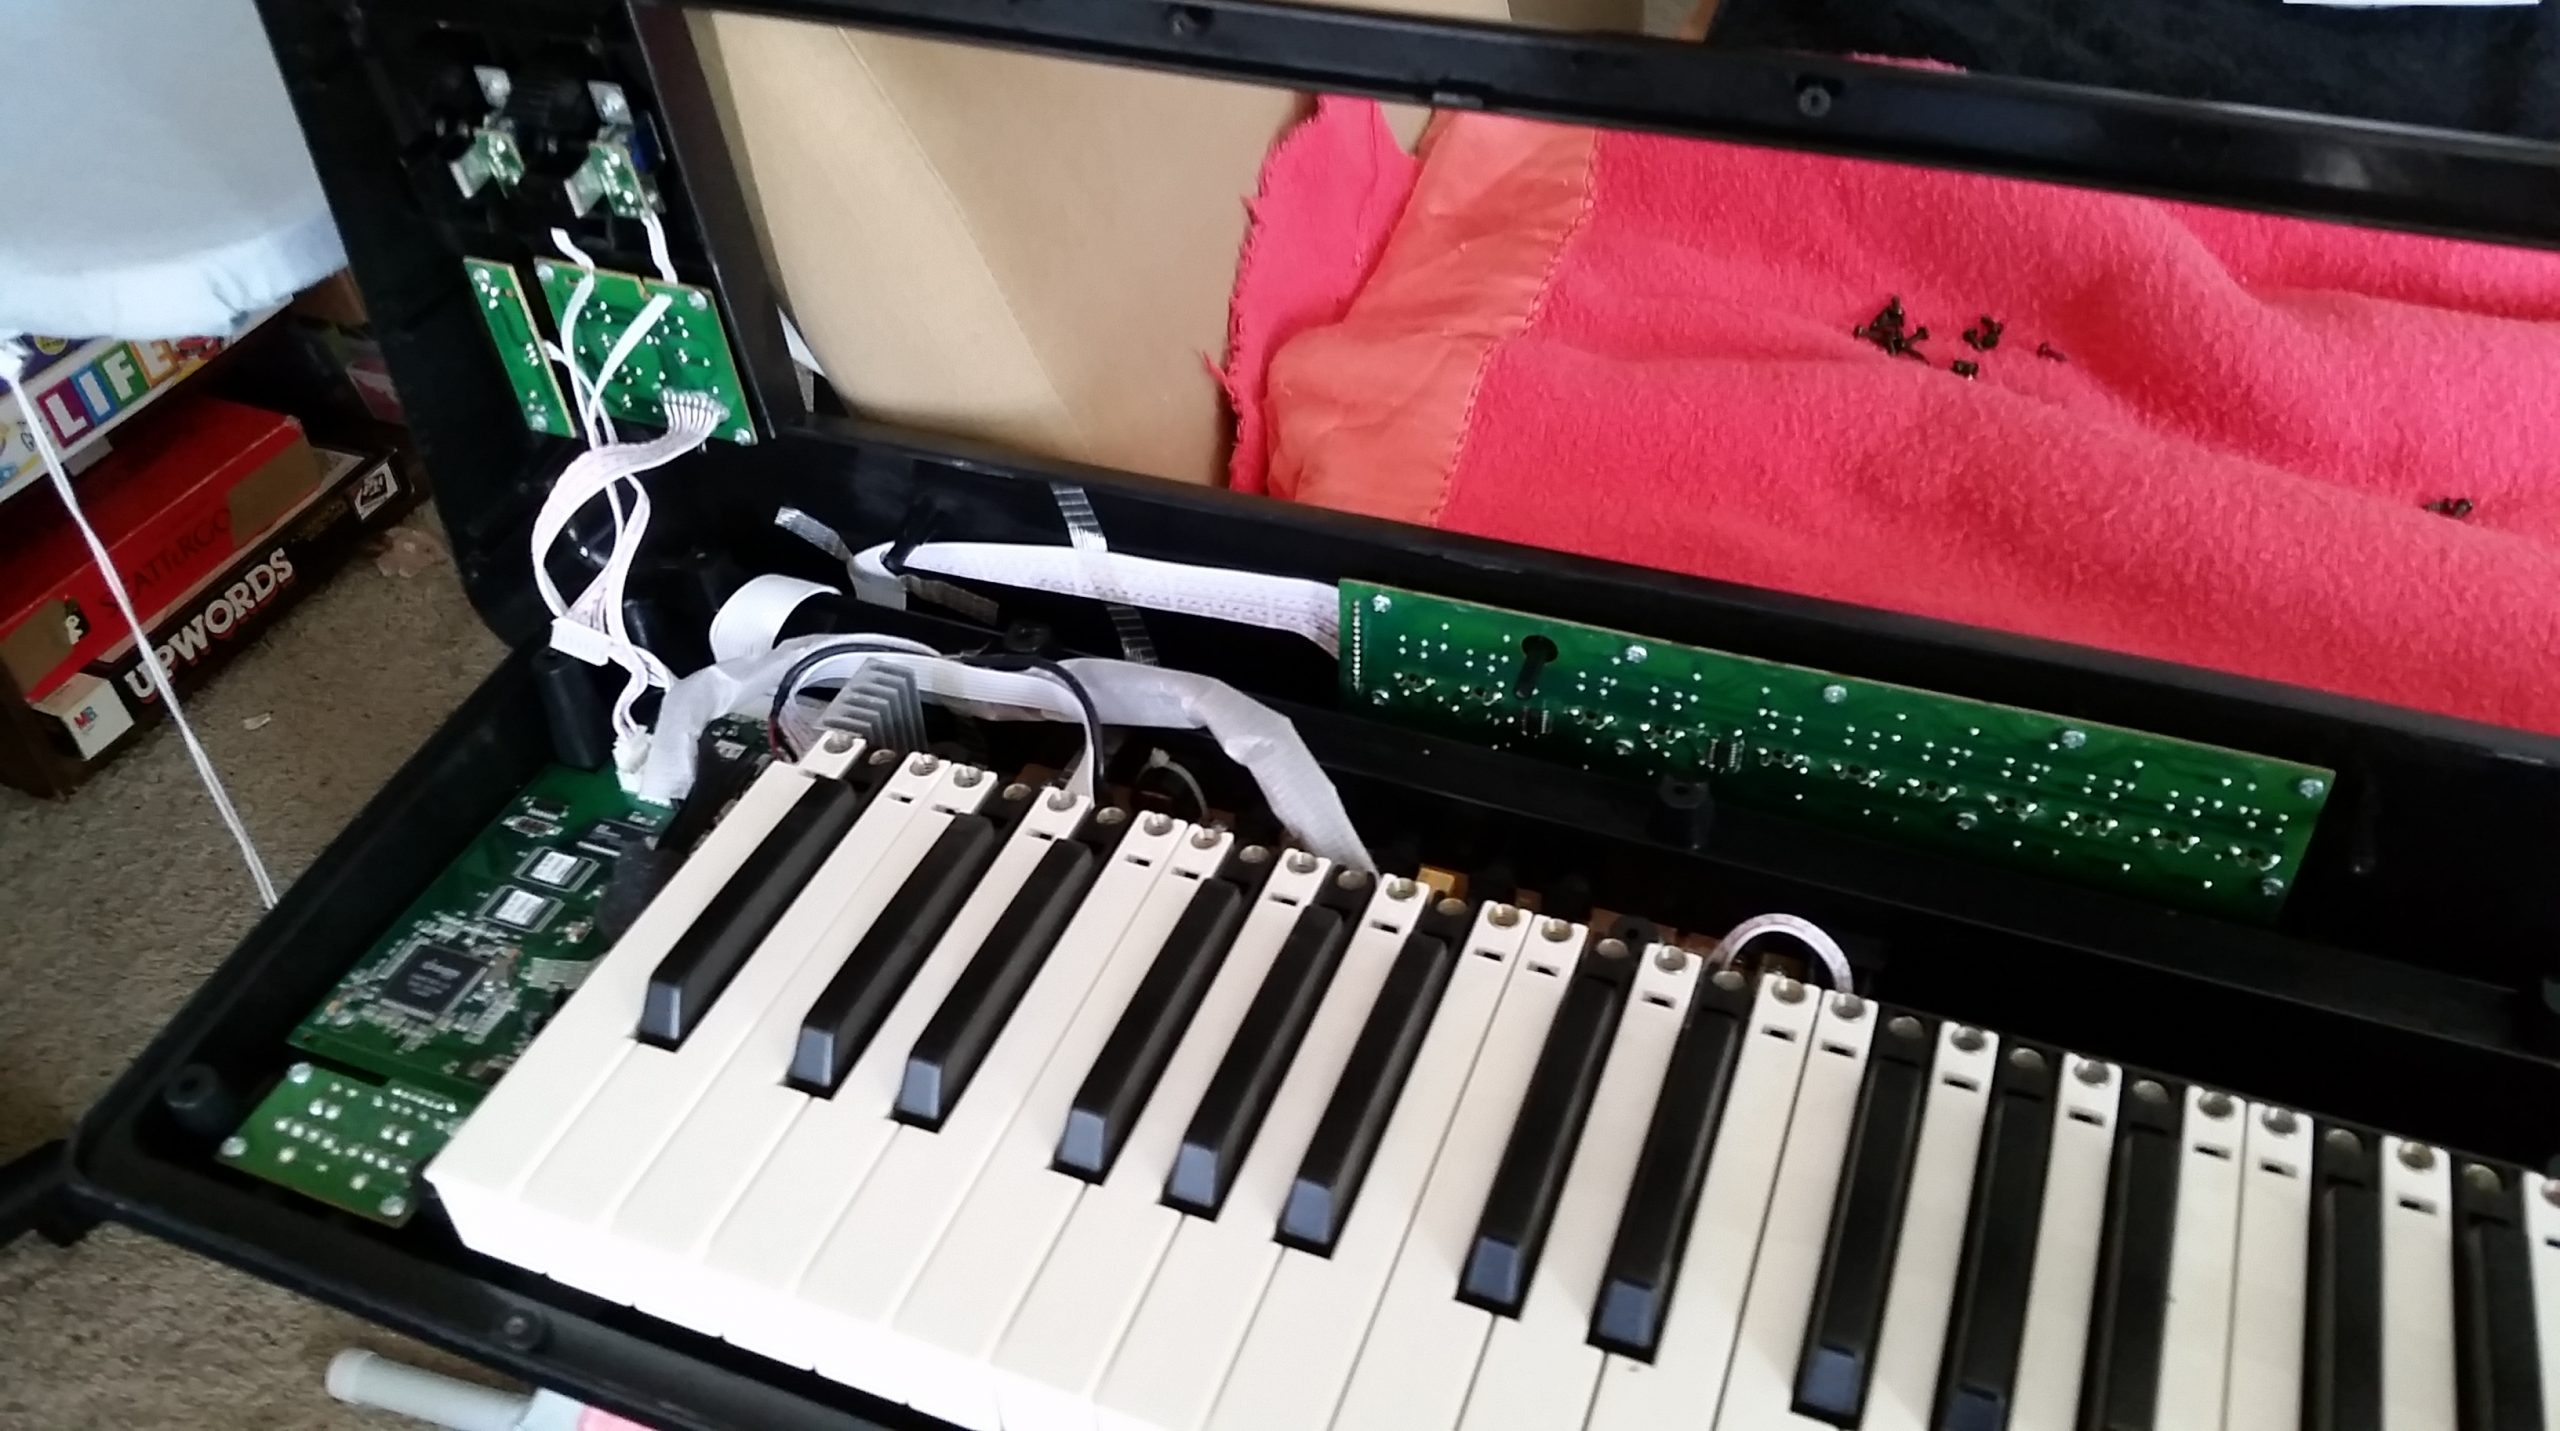 Check Out This Keyboard Repair! | Collin College Fall 2015 Intended For Collin College Spring Break